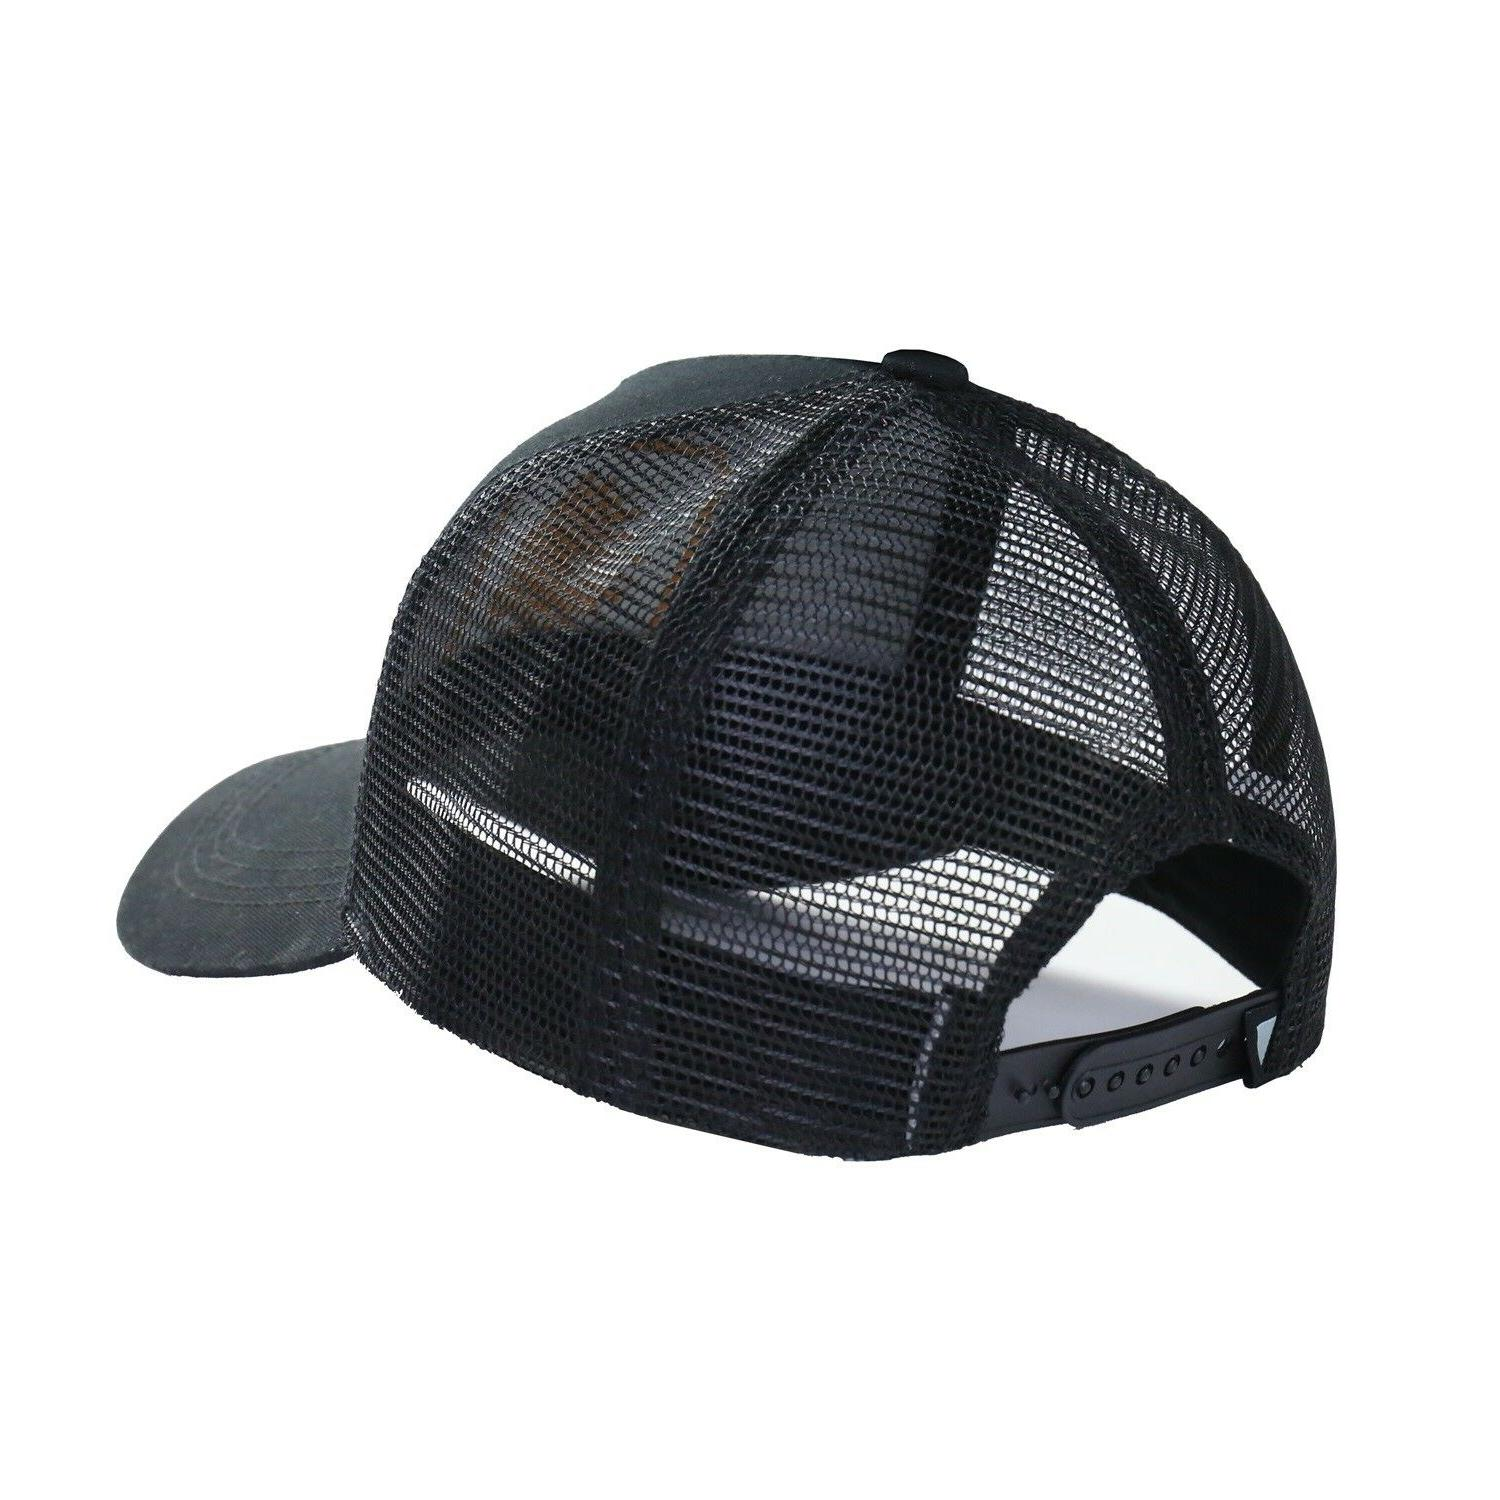 Men's Head Adjustable Mesh Trucker Sports Baseball Black